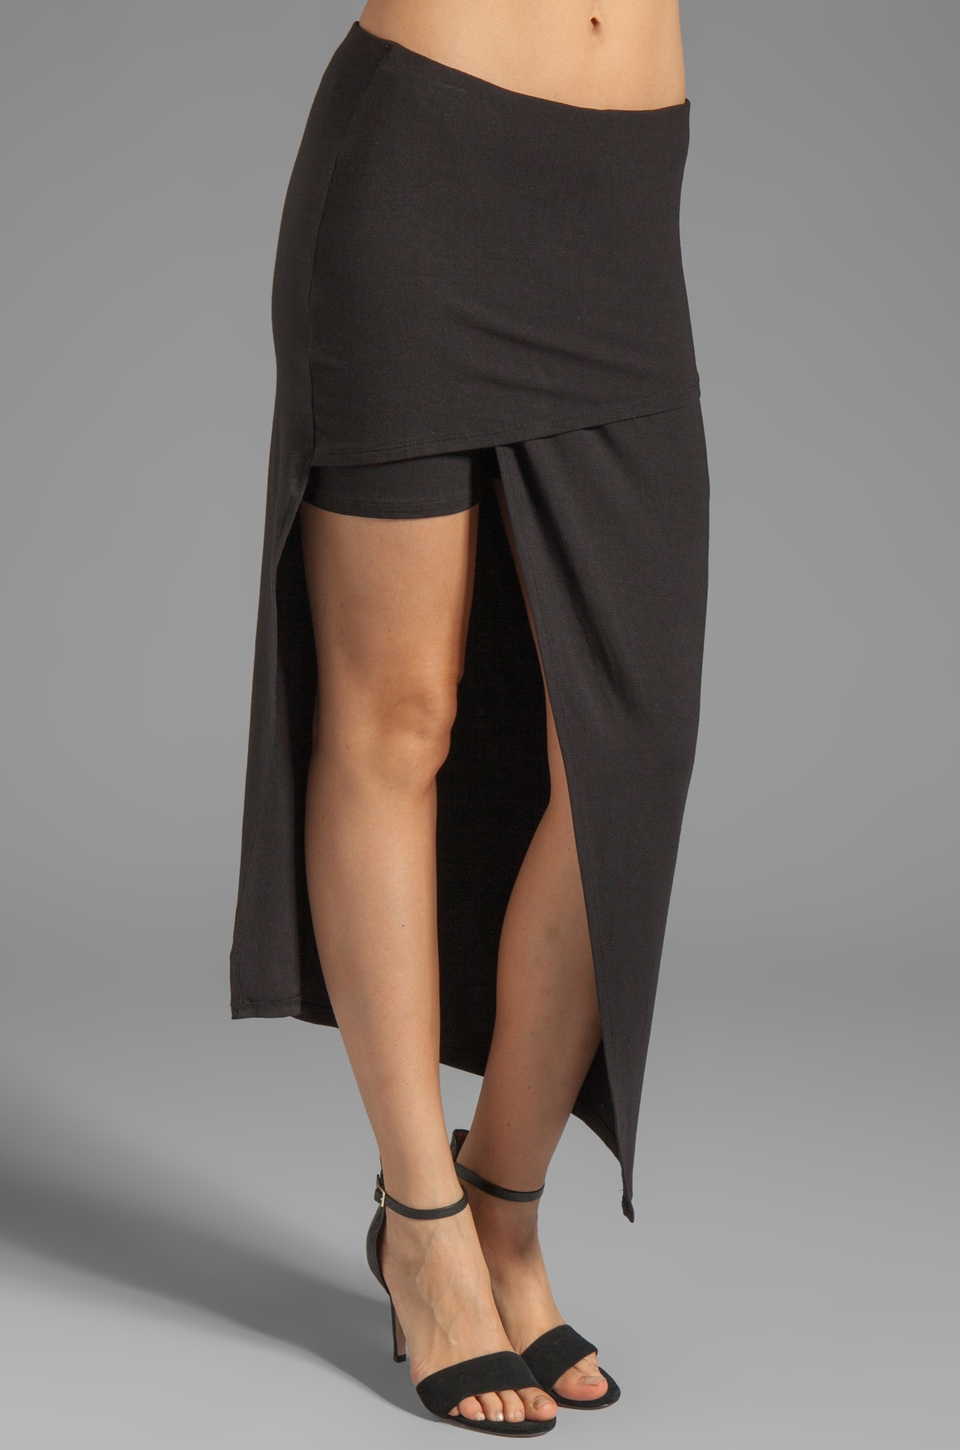 Heather Asymmetrical Wrap Skirt in Black